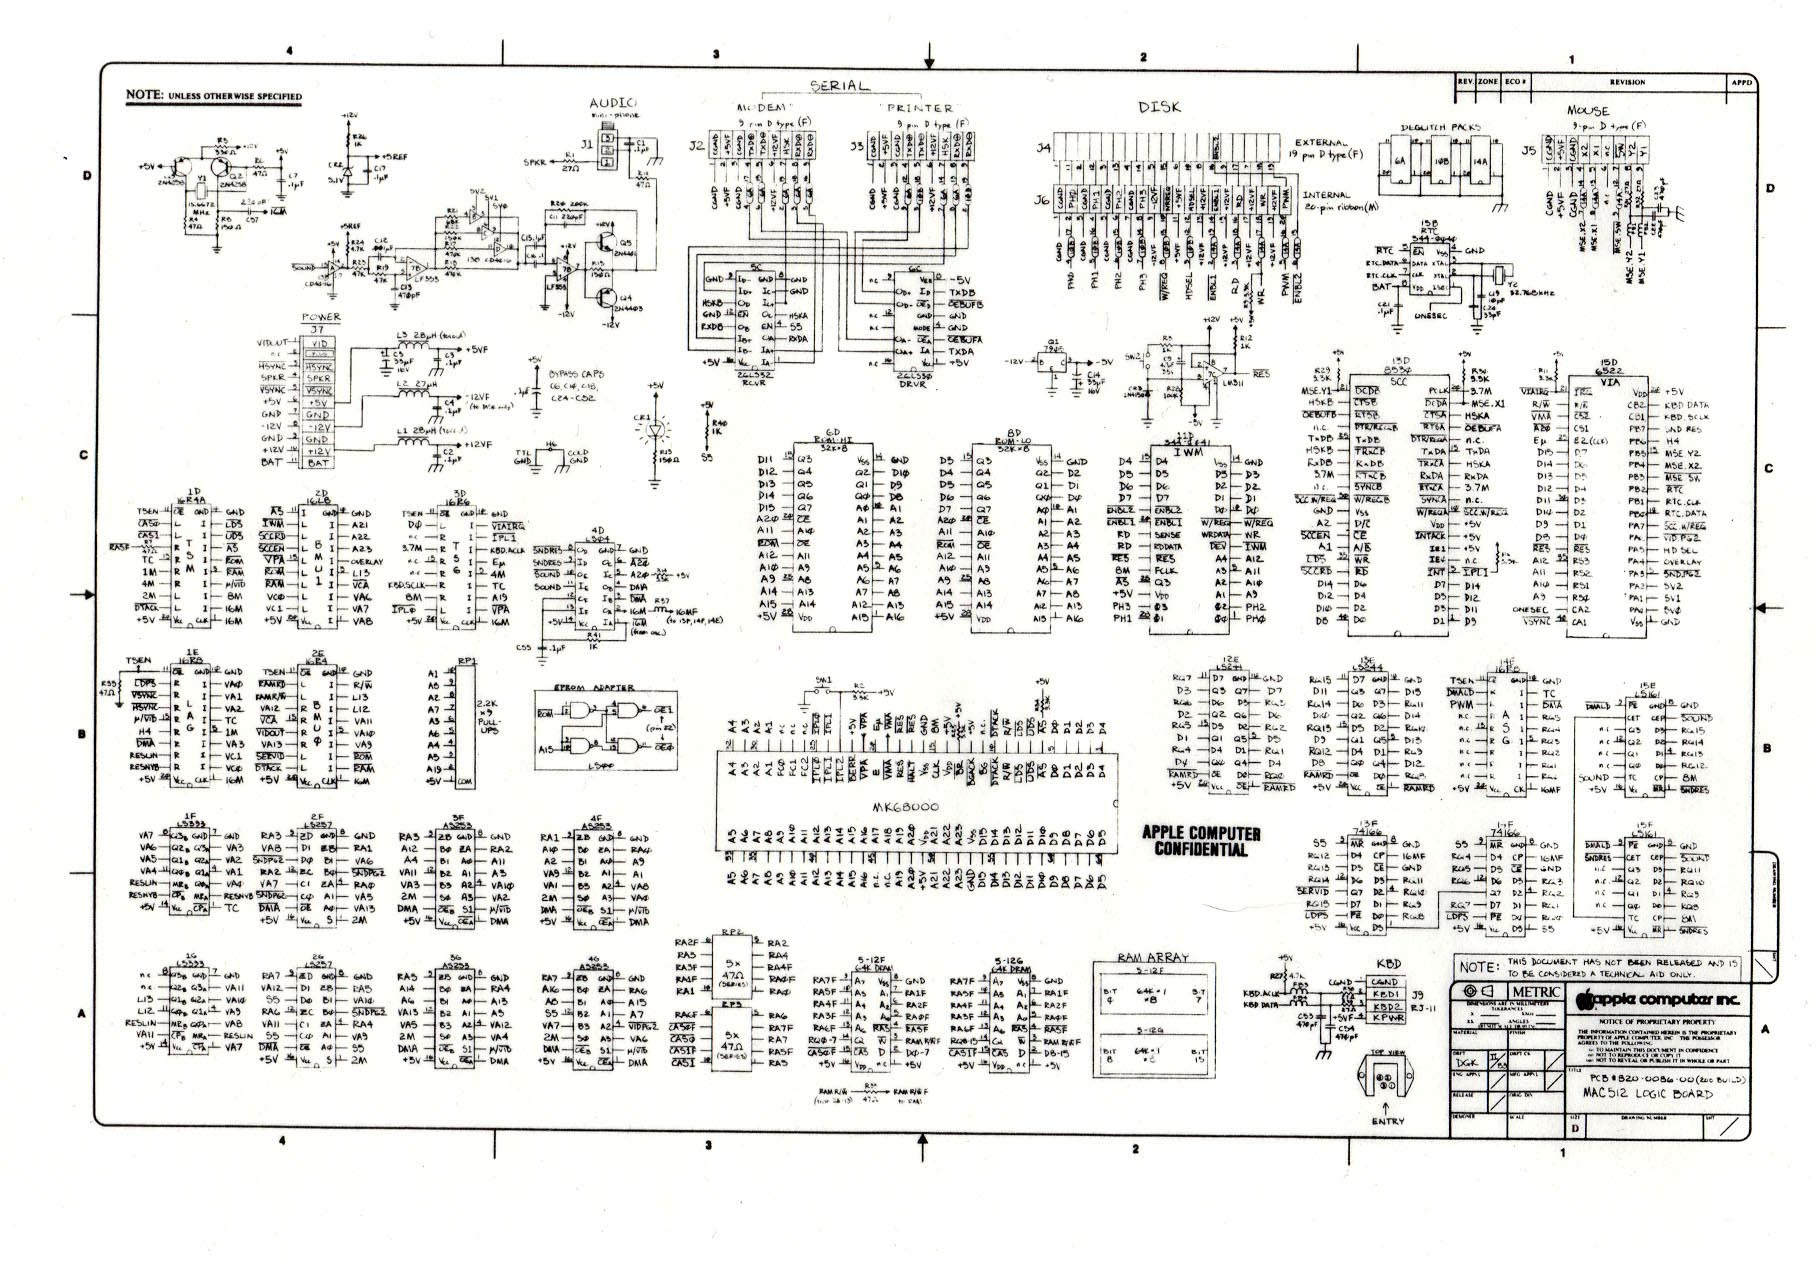 hight resolution of digibarn diagrams original macintosh 512k logic board schematic apple tv wiring diagram apple wiring diagram